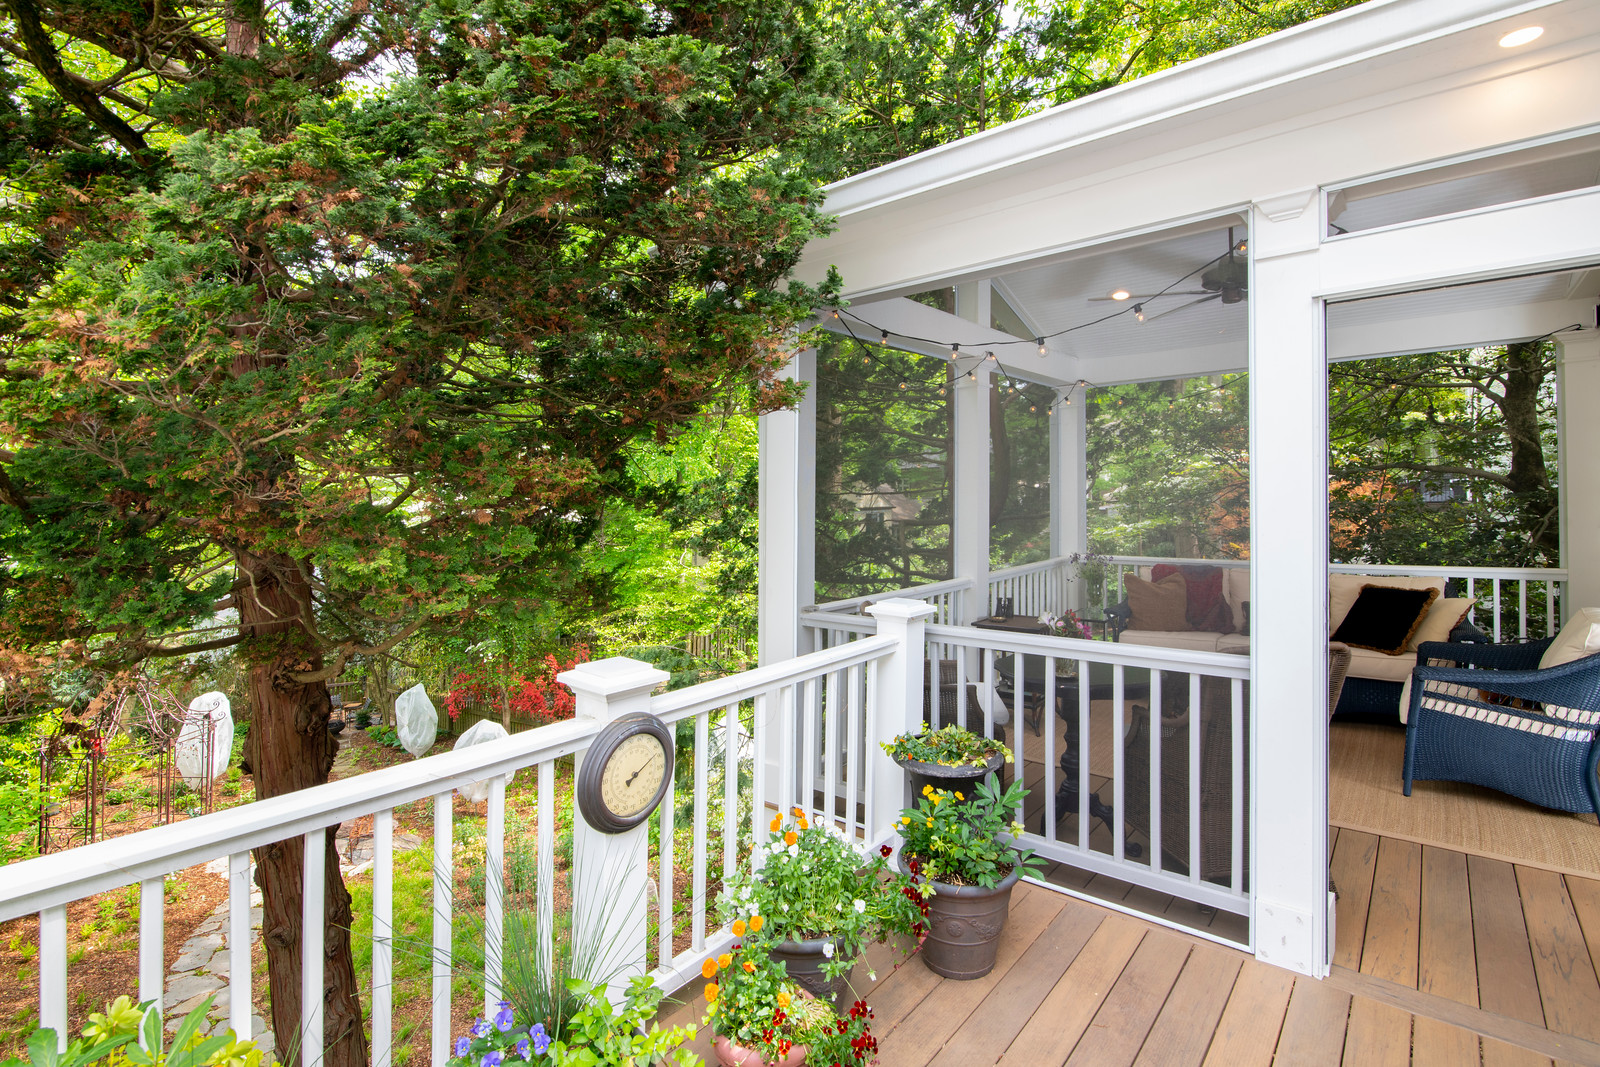 chevy chase 2 story deck screened porch. 9